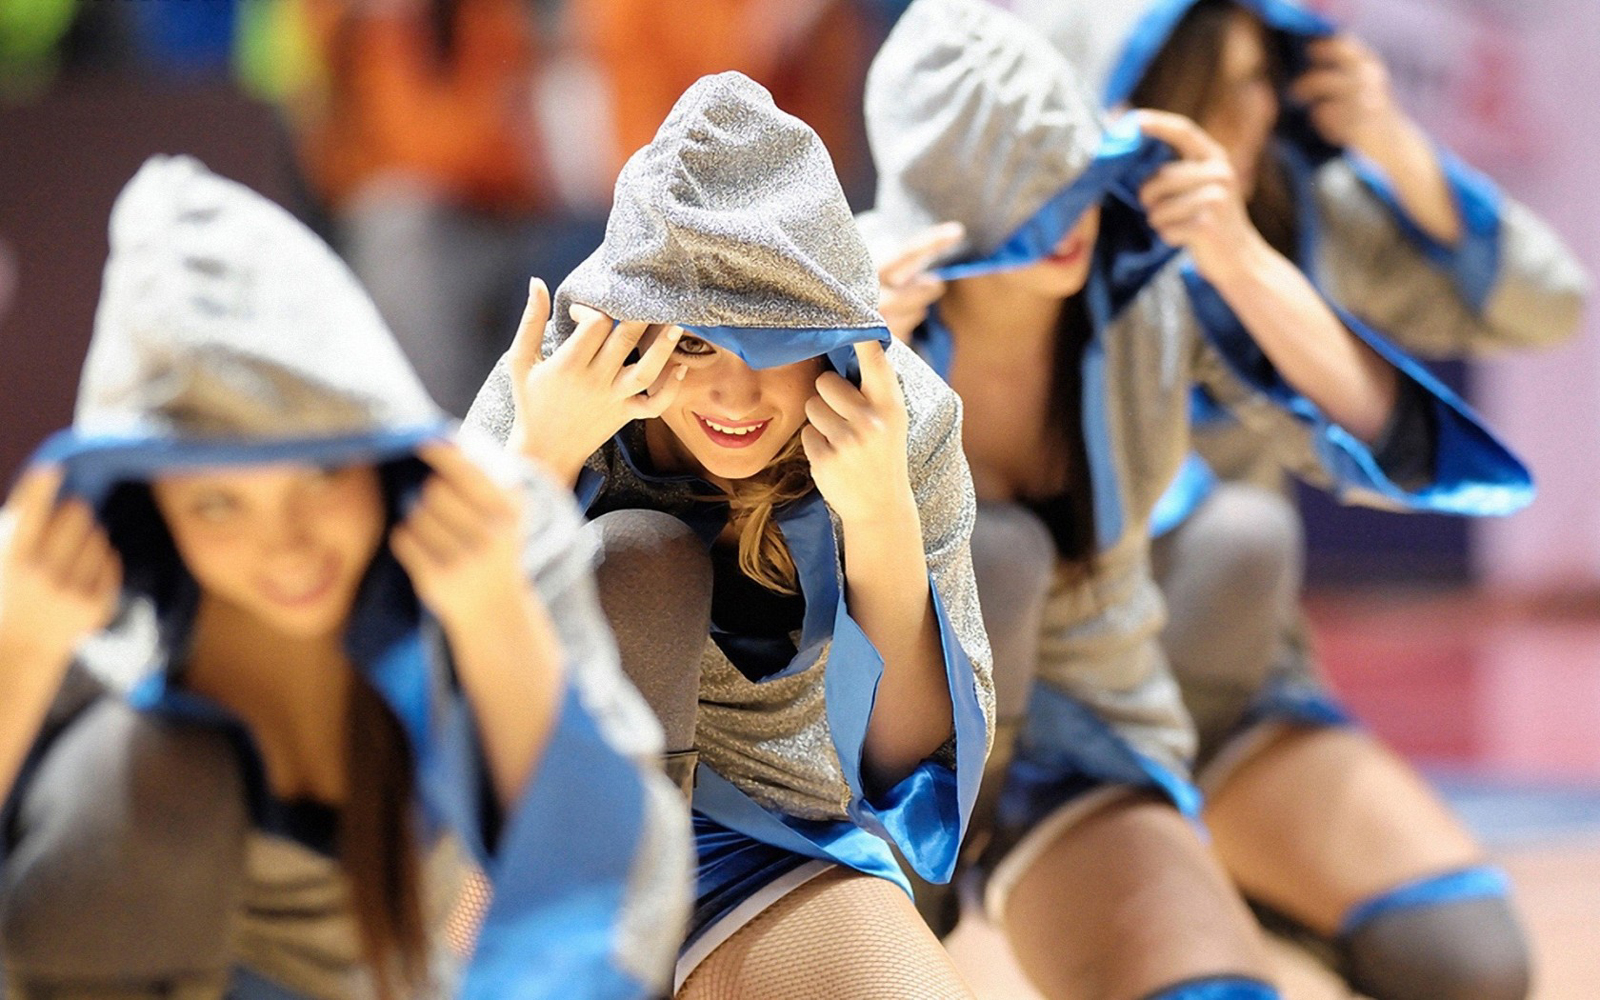 http://3.bp.blogspot.com/-tThvwxL-NFc/UPWZ23g2OyI/AAAAAAAAJ7Y/rAcn5HfJuwY/s1600/NBA_Cute_Cheerleader_Girls_2013_USA_Hd_Desktop_Wallpaper_citiesandteams.blogspot.com.jpg